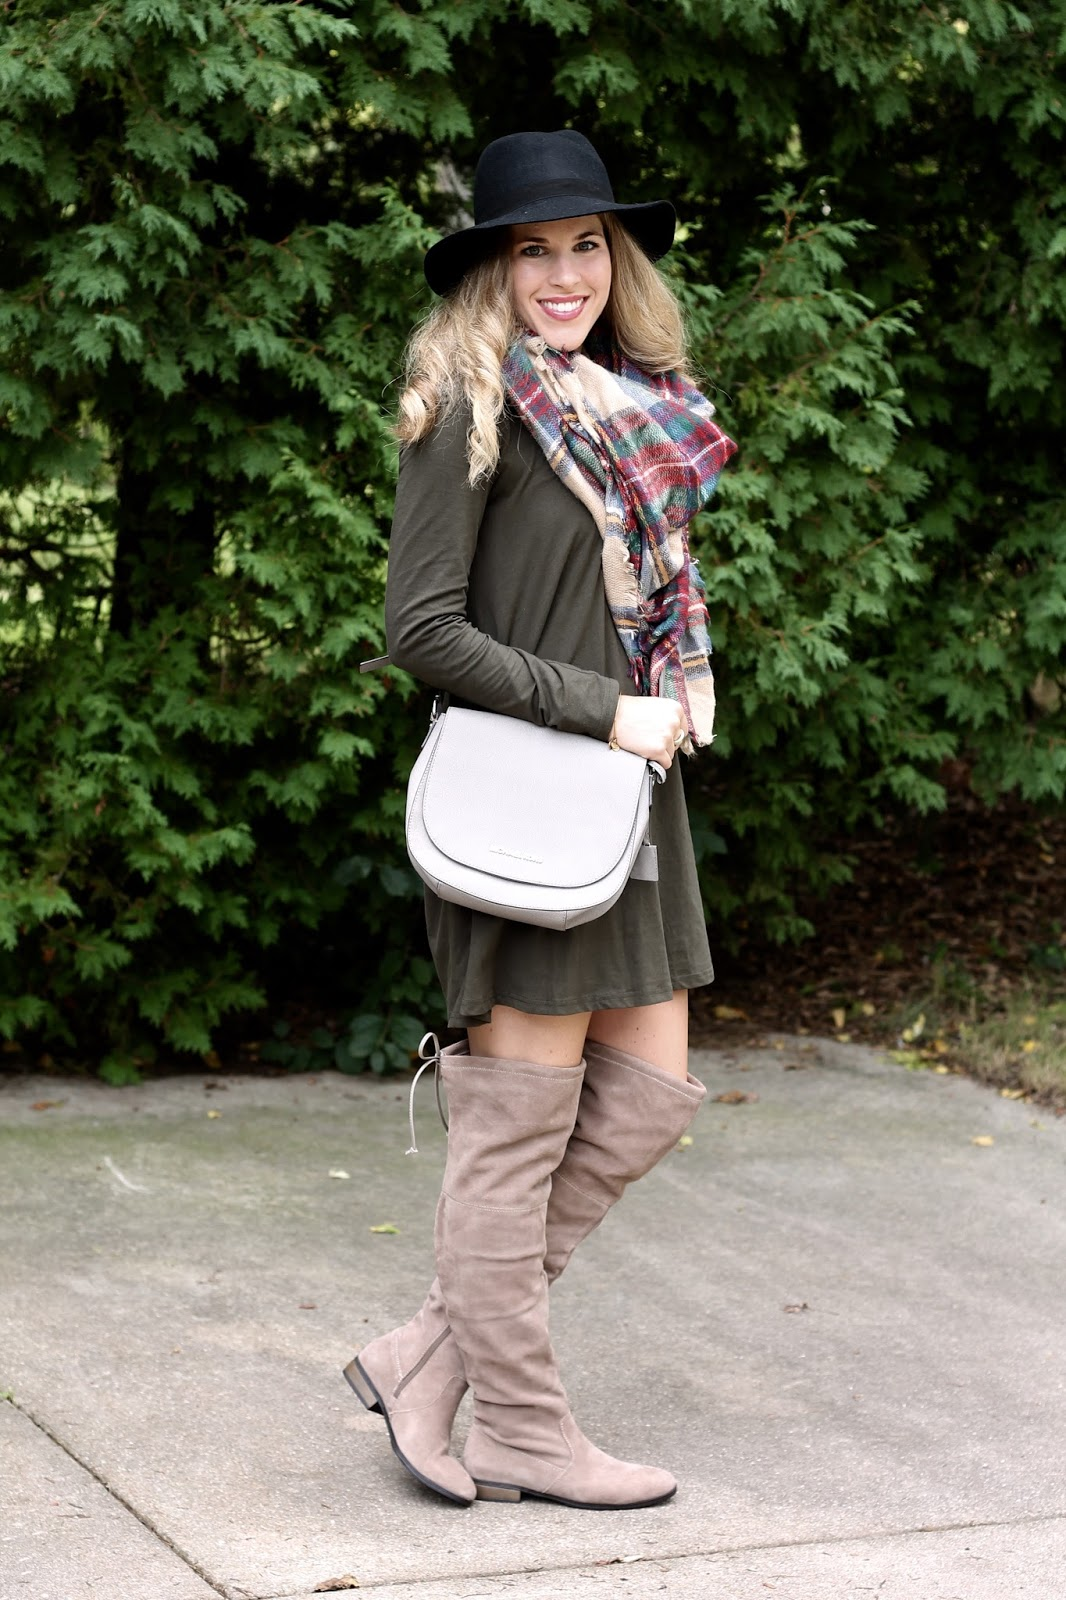 olive dress, OTK boots, blanket scarf, Michael Kors grey saddlebag, black wide brim felt hat